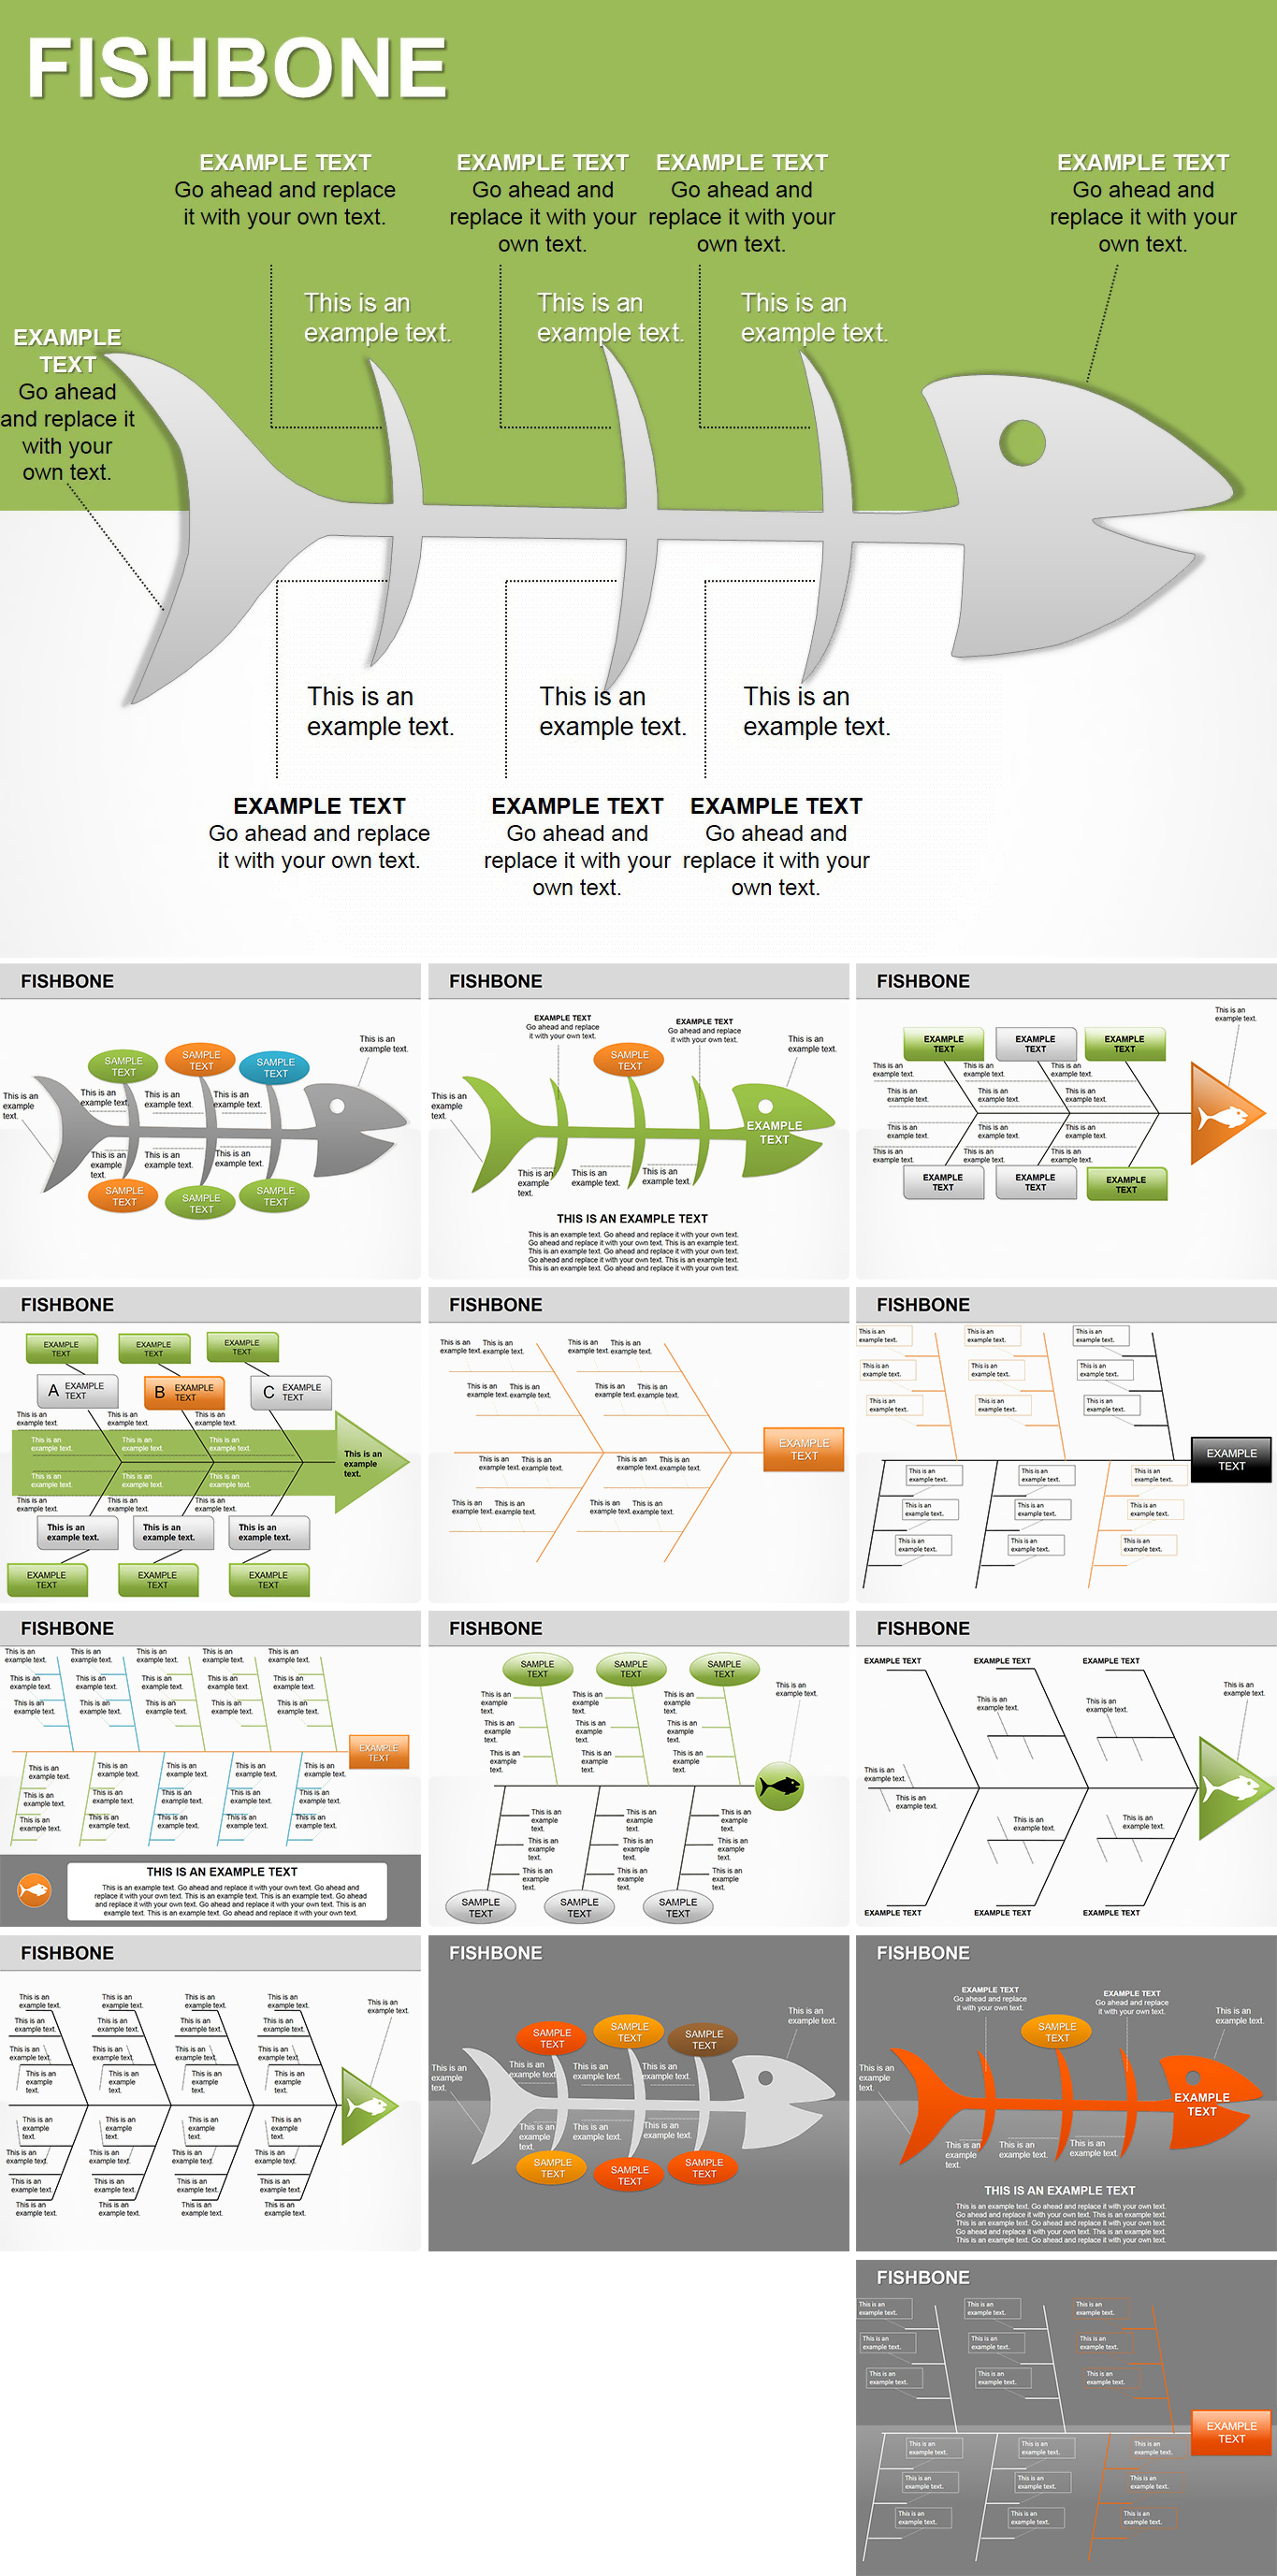 lean six sigma cause and effect diagram template jane schaffer spider example fishbone powerpoint diagrams imaginelayout